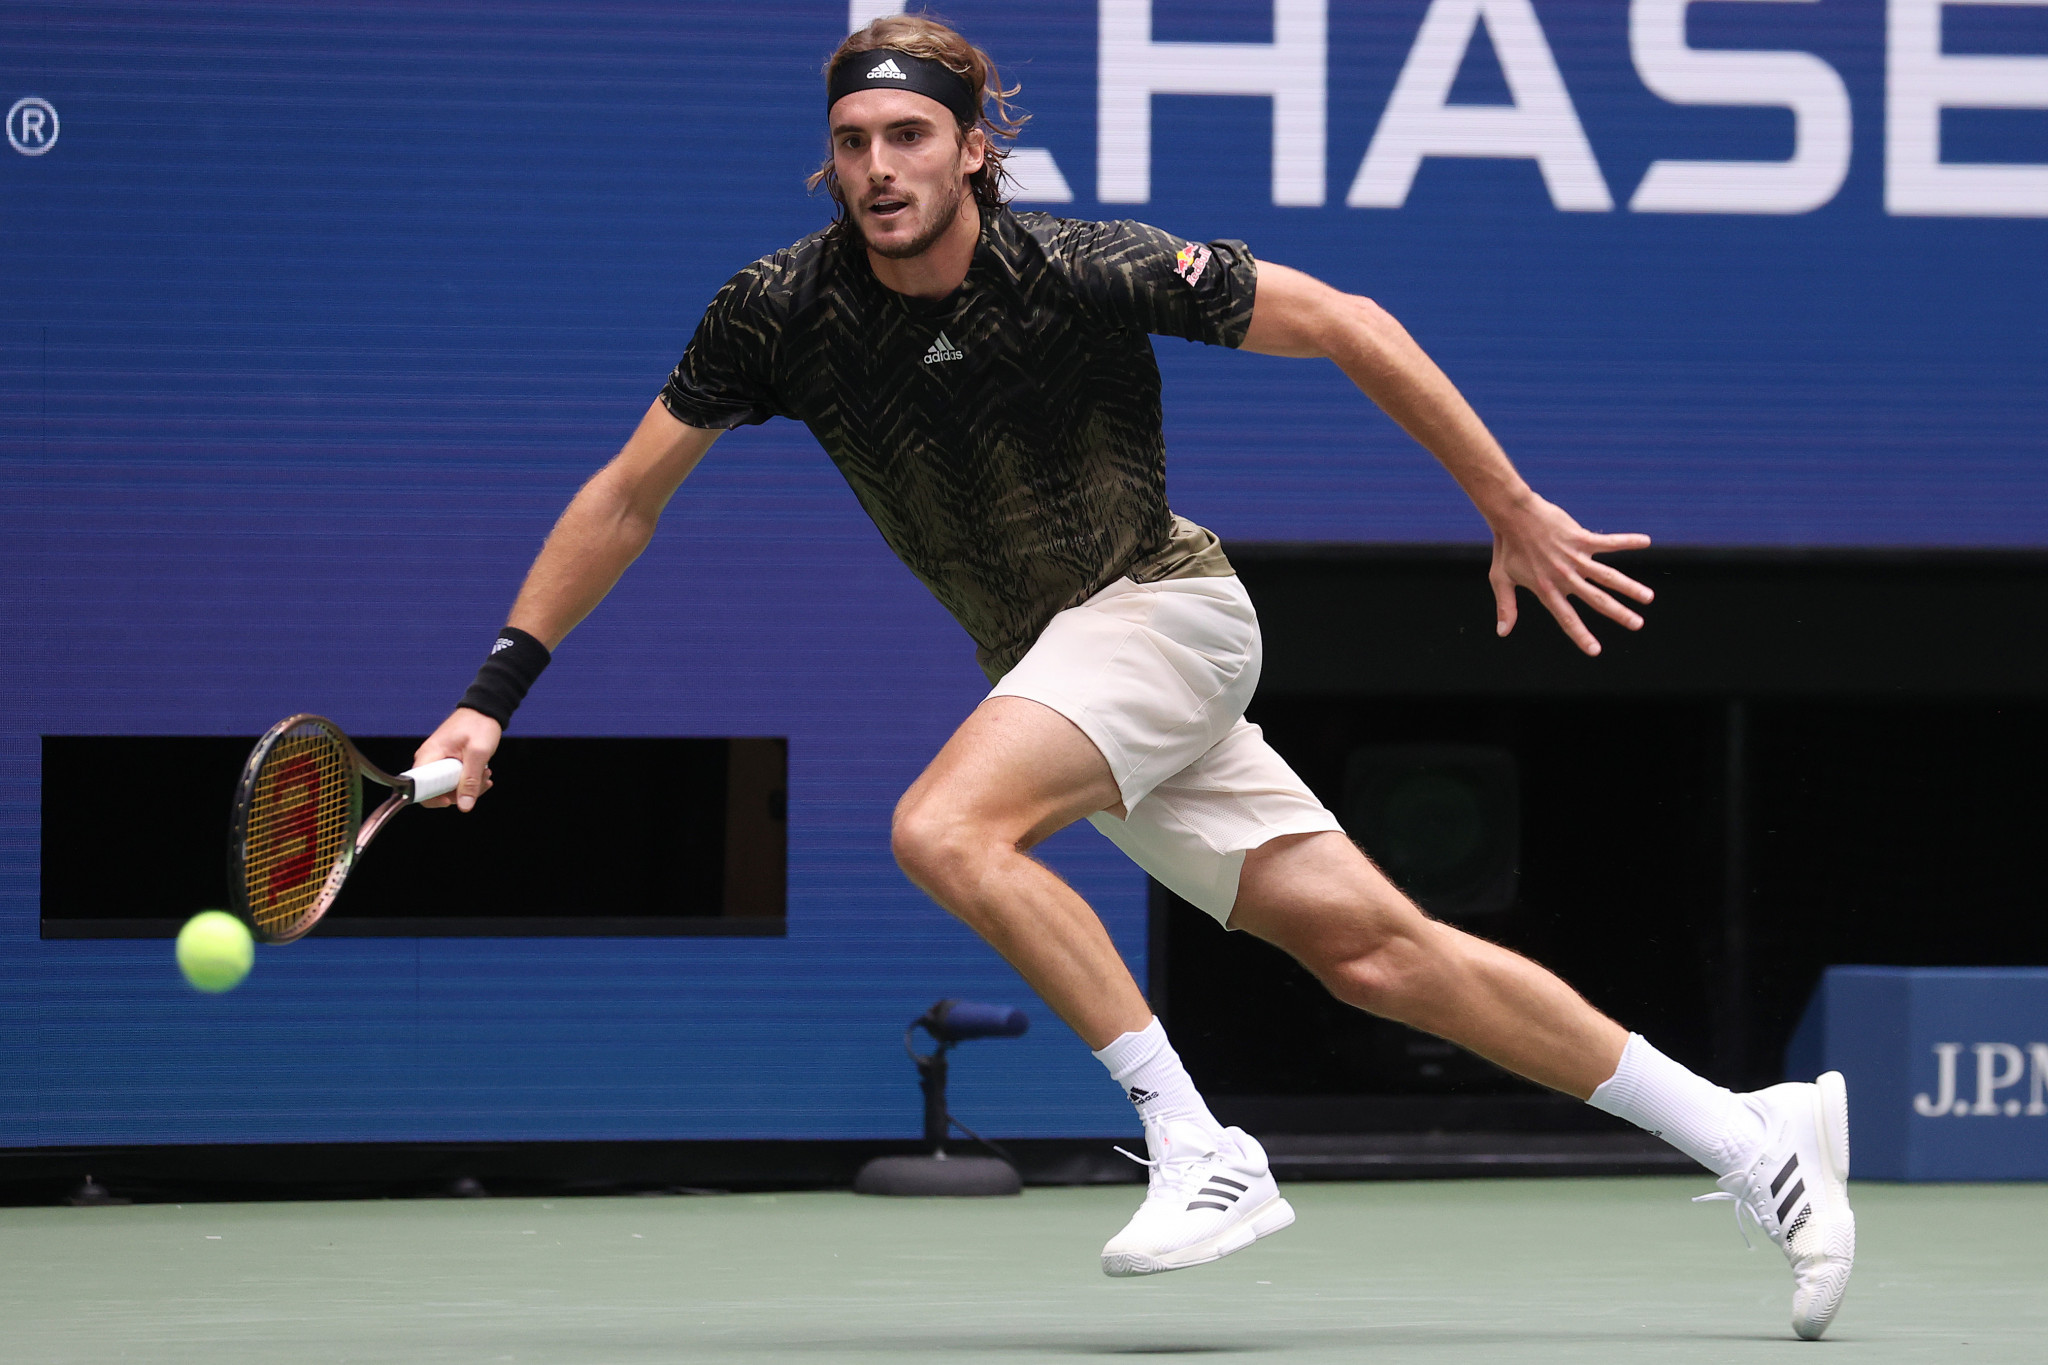 Greece's Stefanos Tsitsipas, ranked number three in the world, is among the top tennis players who have revealed they are opposed to being vaccinated against COVID-19 ©Getty Images